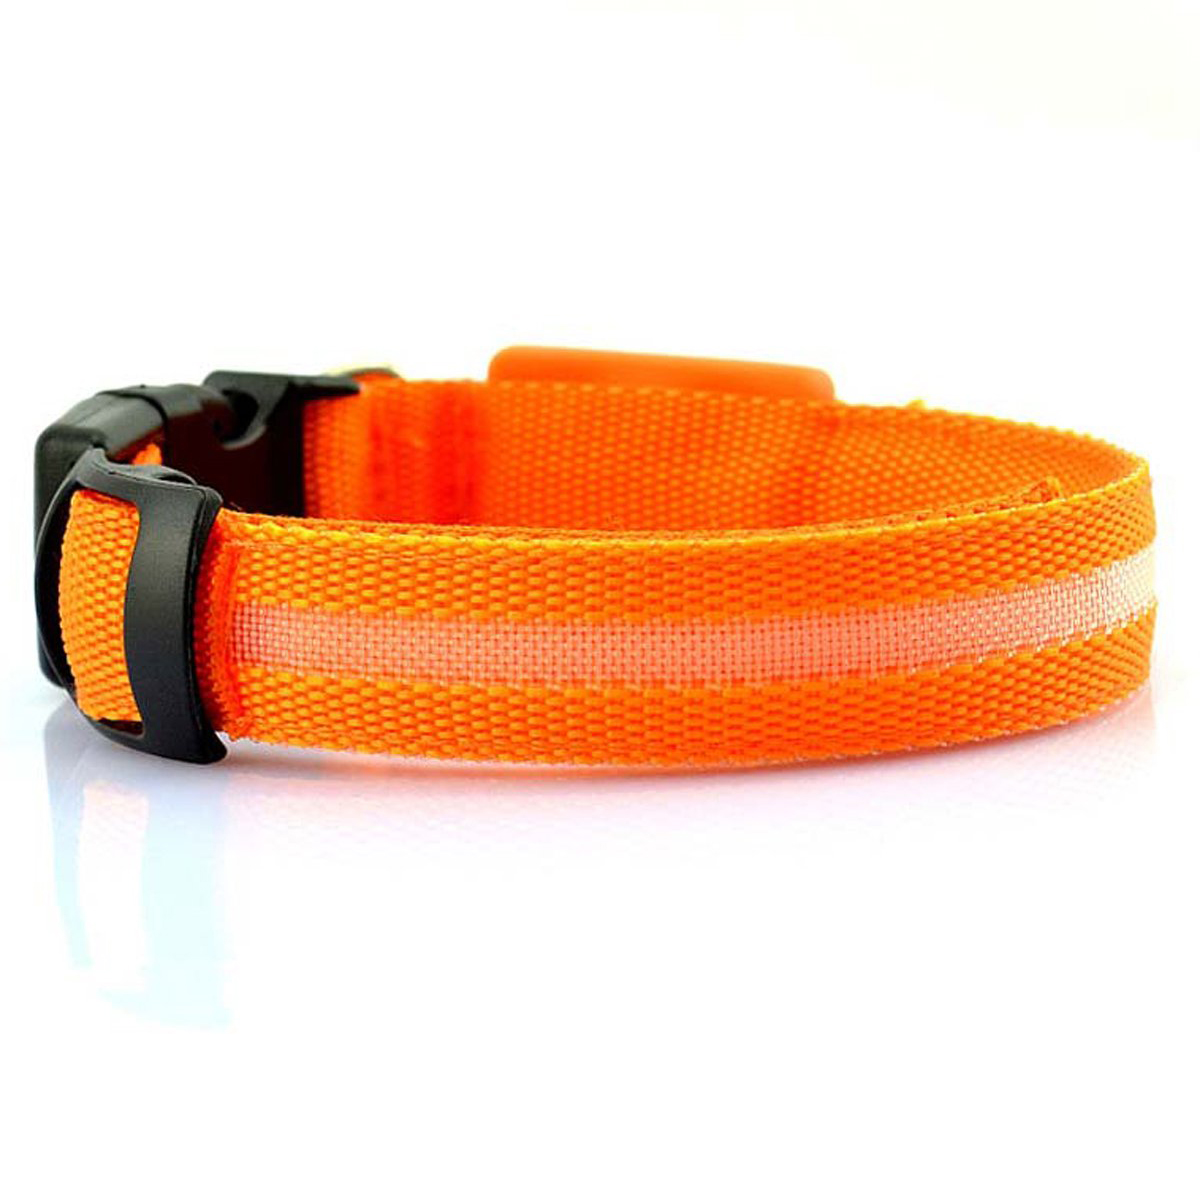 Safety Collar for Dogs, Flashing LED Lights up the Collar  H7S8